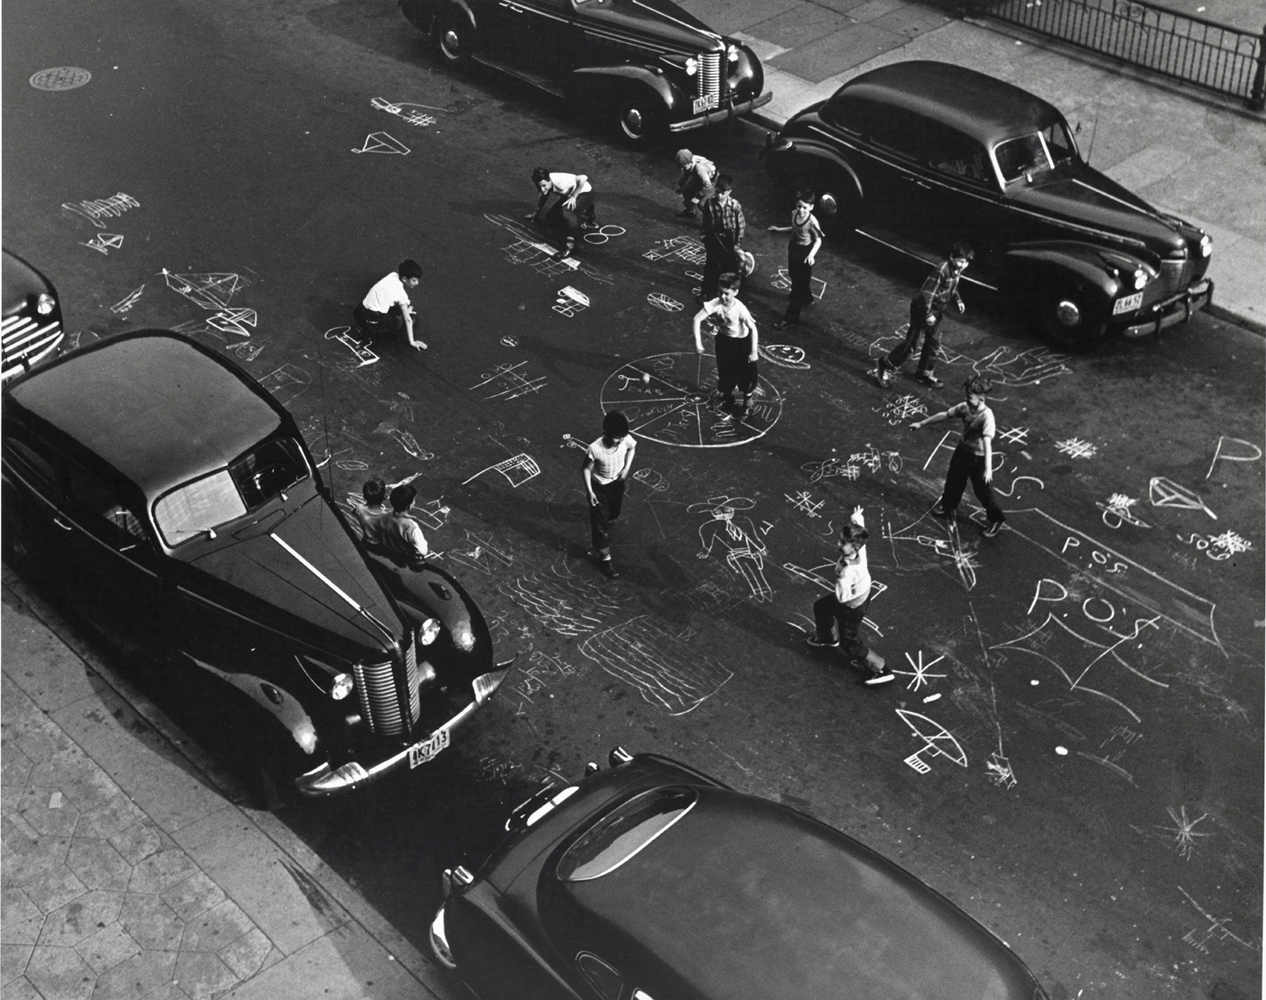 Arthur Leipzig, Chalk Games, 1950, gelatin silver print, 16 x 20 inches, signed and stamped verso, framed, price on request